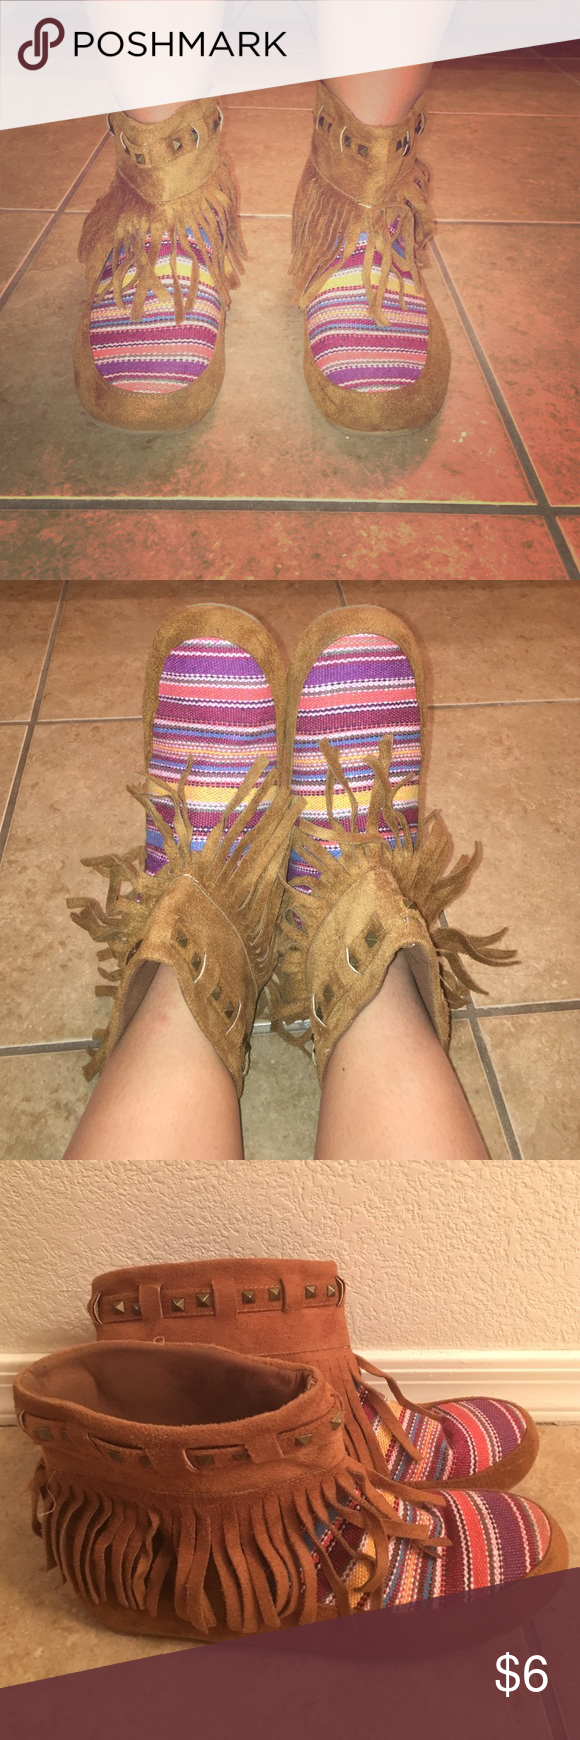 Hippie bootie slippers ✌🏼️ Super cute comfy bootie slippers w/ tassels. Barely worn! In great shape. Could be worn out or in the house on a lazy Sunday 🌞 Claire's Shoes Ankle Boots & Booties